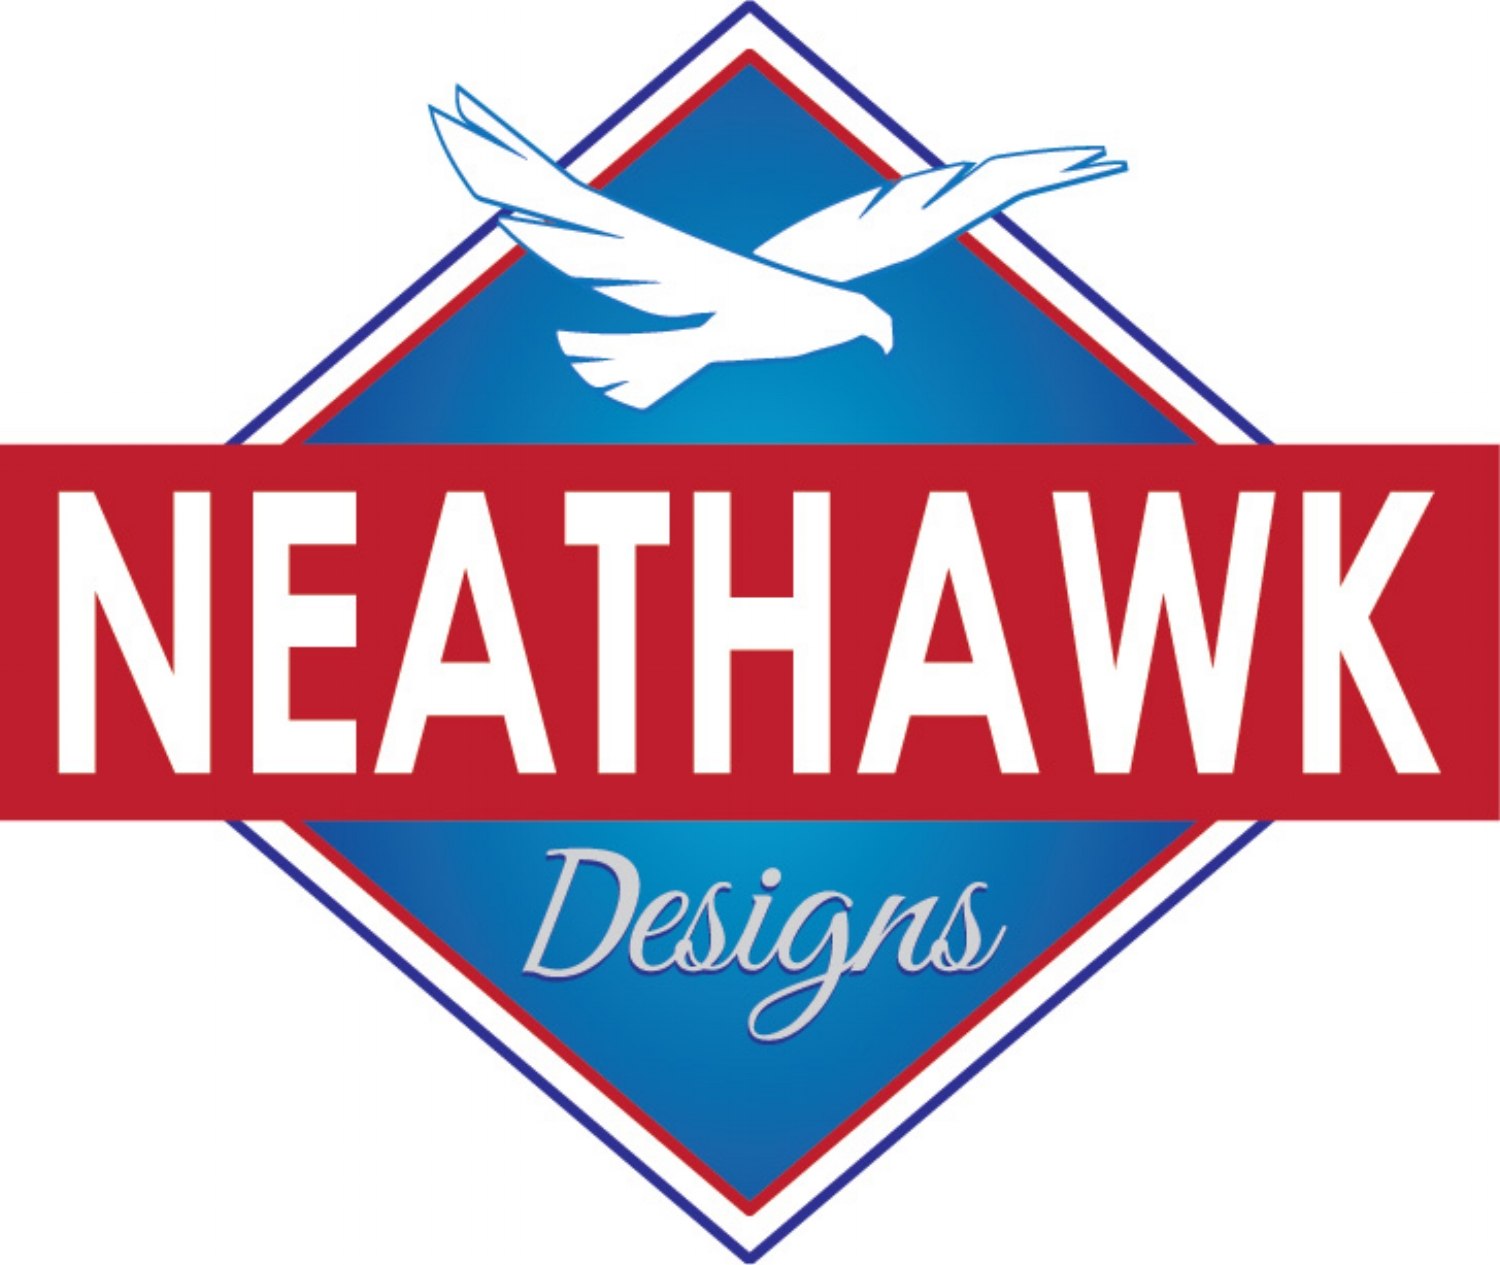 Neathawk Designs